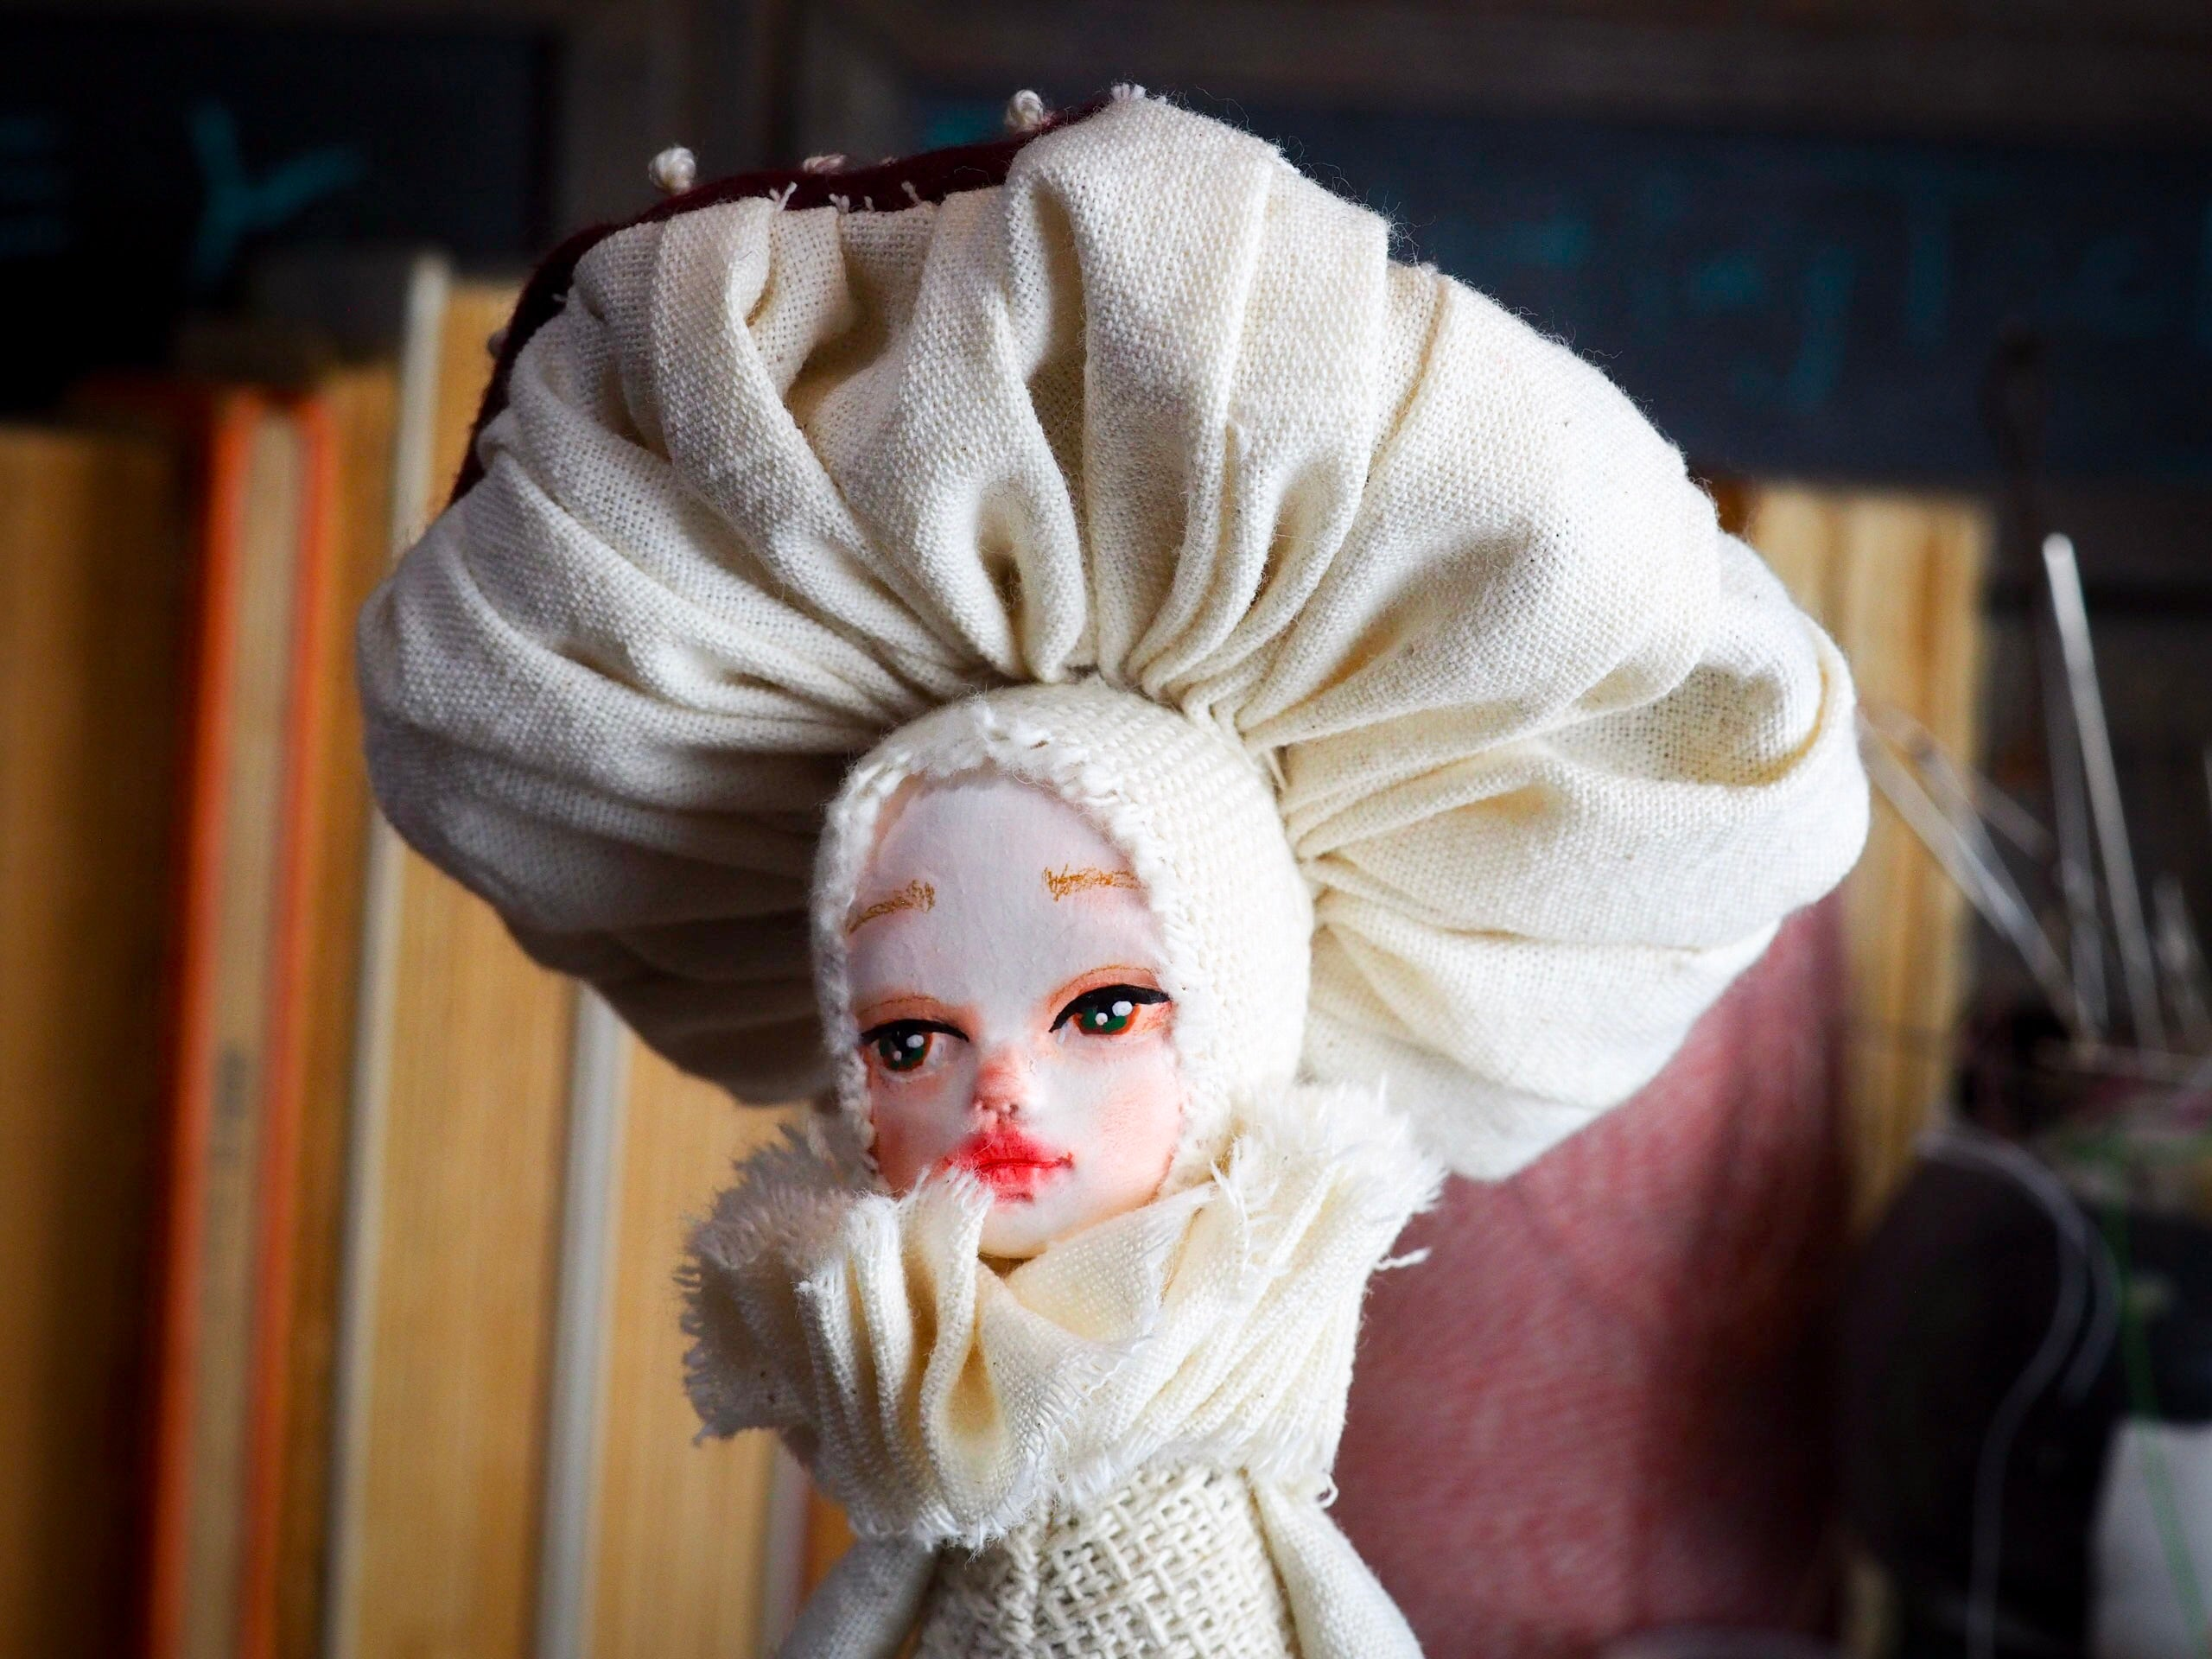 MUSHROOM SPECIMEN N. 7 - Original woodlands handmade art doll by Danita Art, Art Doll by Danita Art